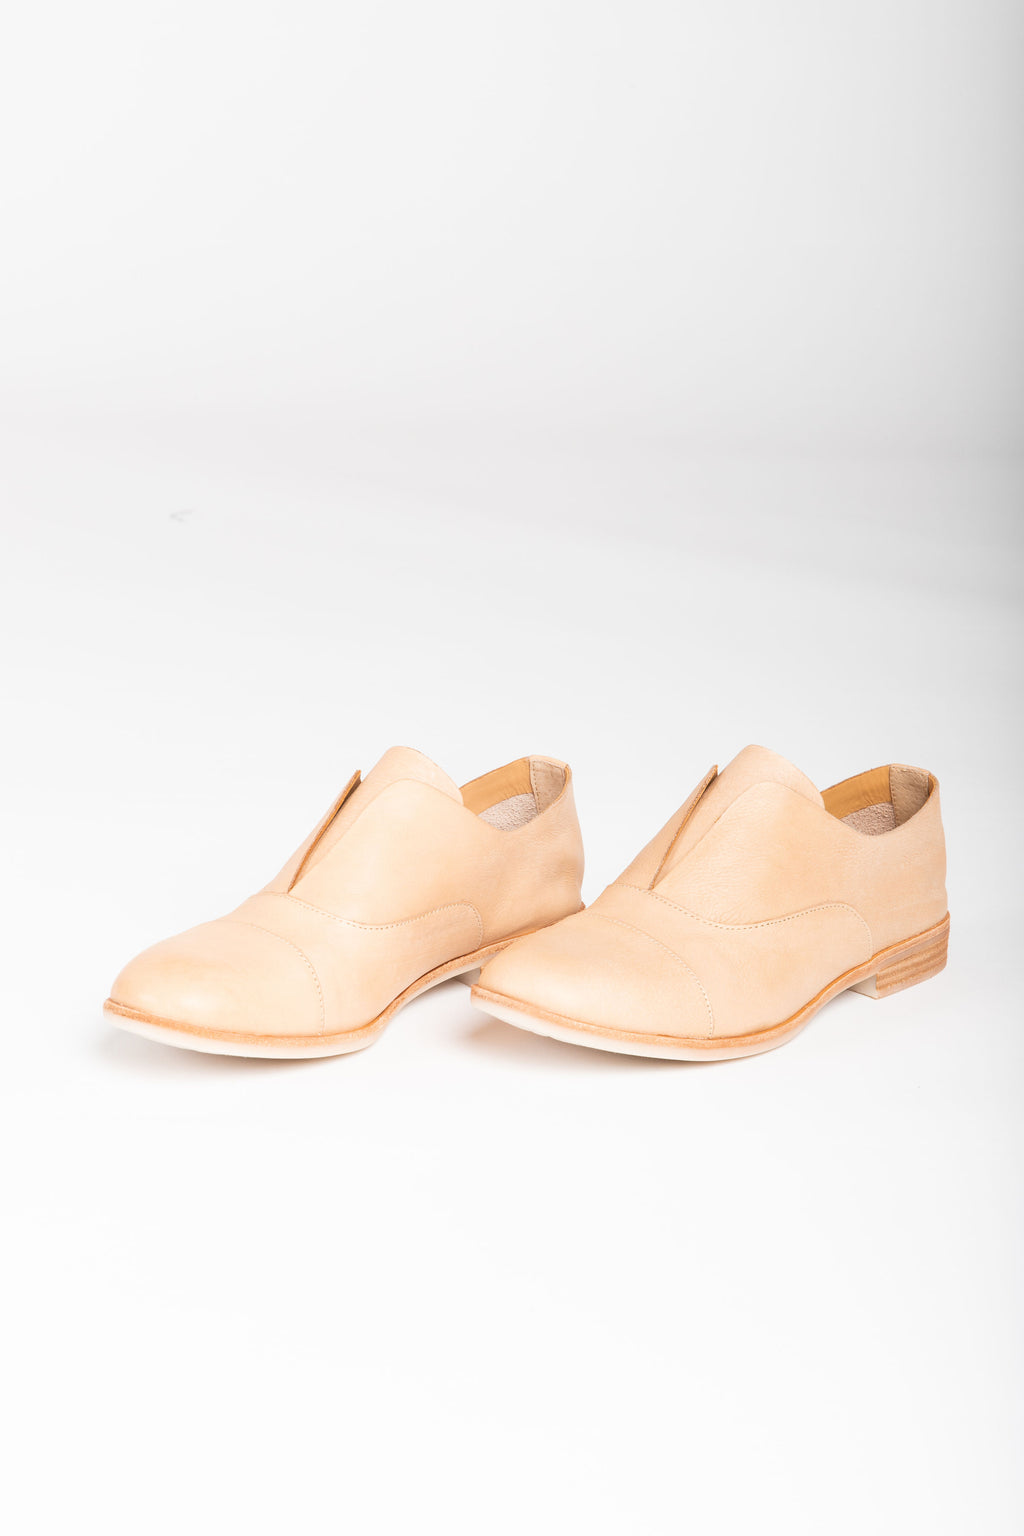 Kork-Ease: Nottingham Oxford Flat in Natural